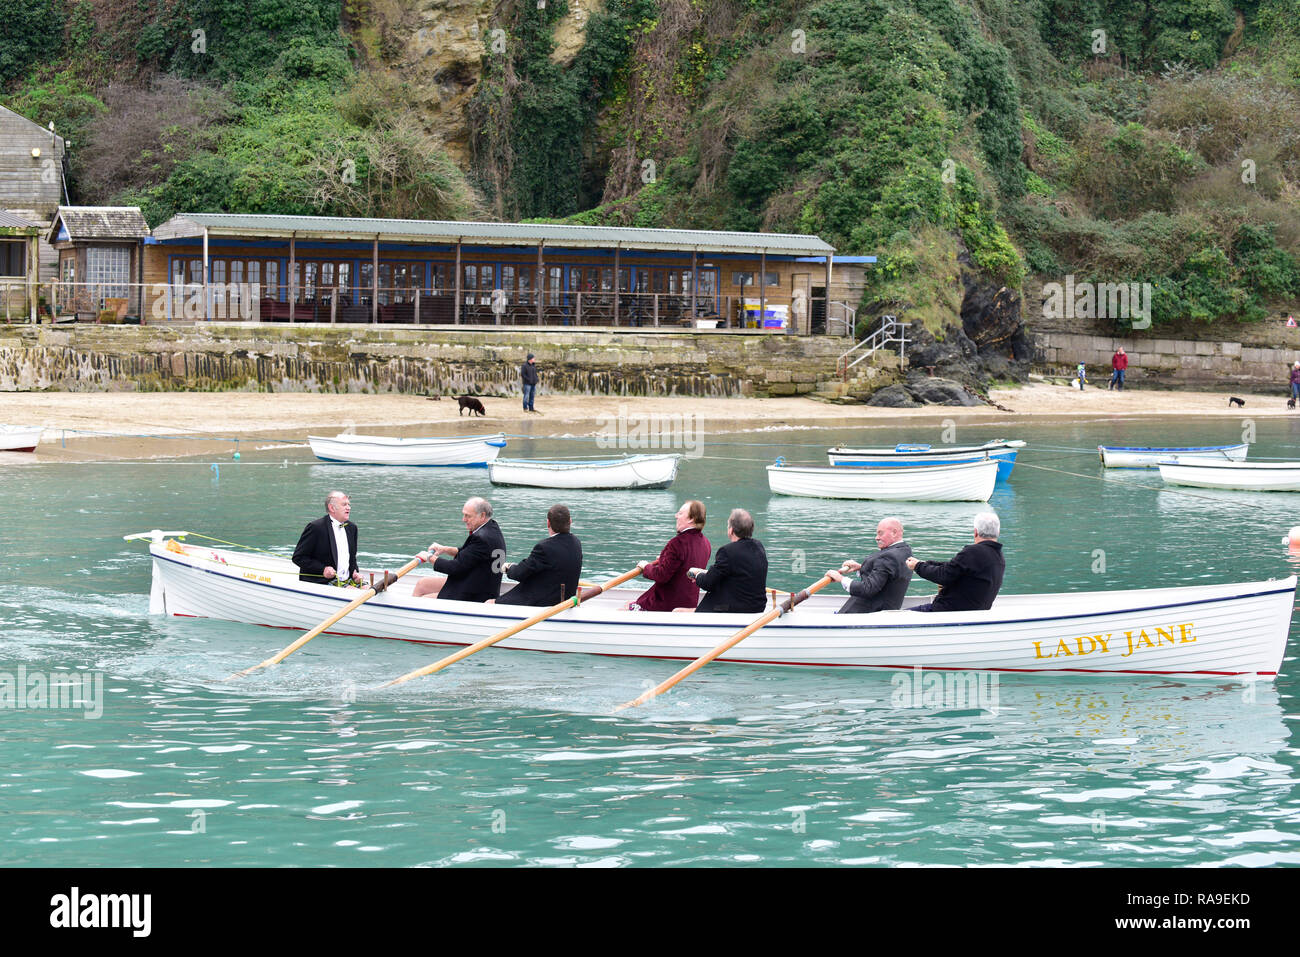 Senior members of Newquay Rowing Club wearing tuxedos setting off from Newquay Harbour on their annual 'Port Run' in a traditional Cornish Pilot gig. - Stock Image